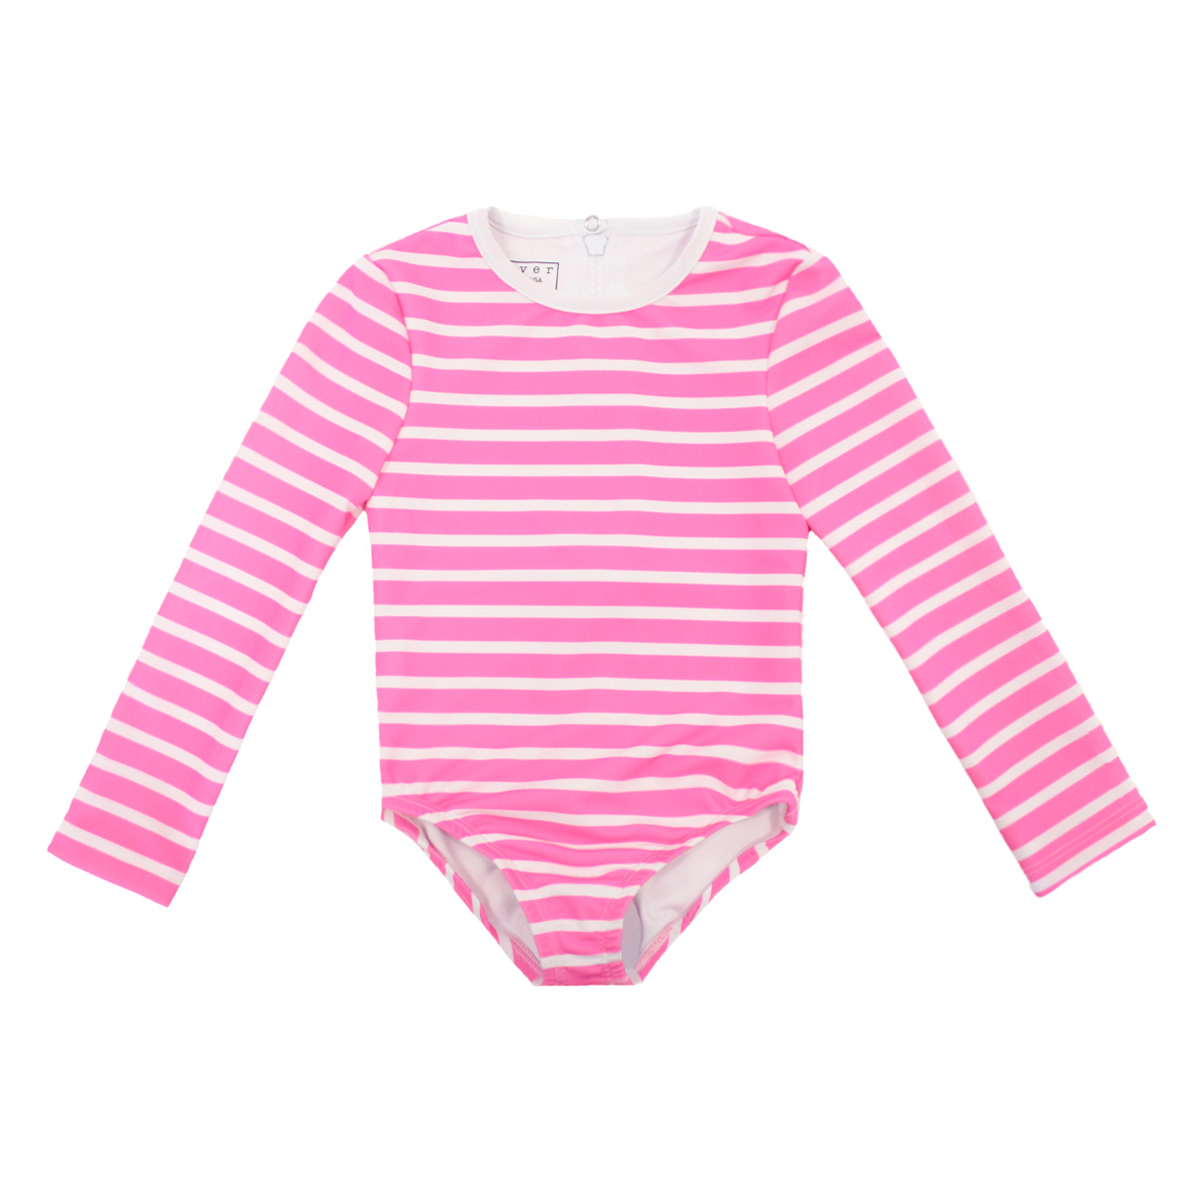 Cover Swim x The Tot Long Sleeve Swimsuit in Pink Stripe